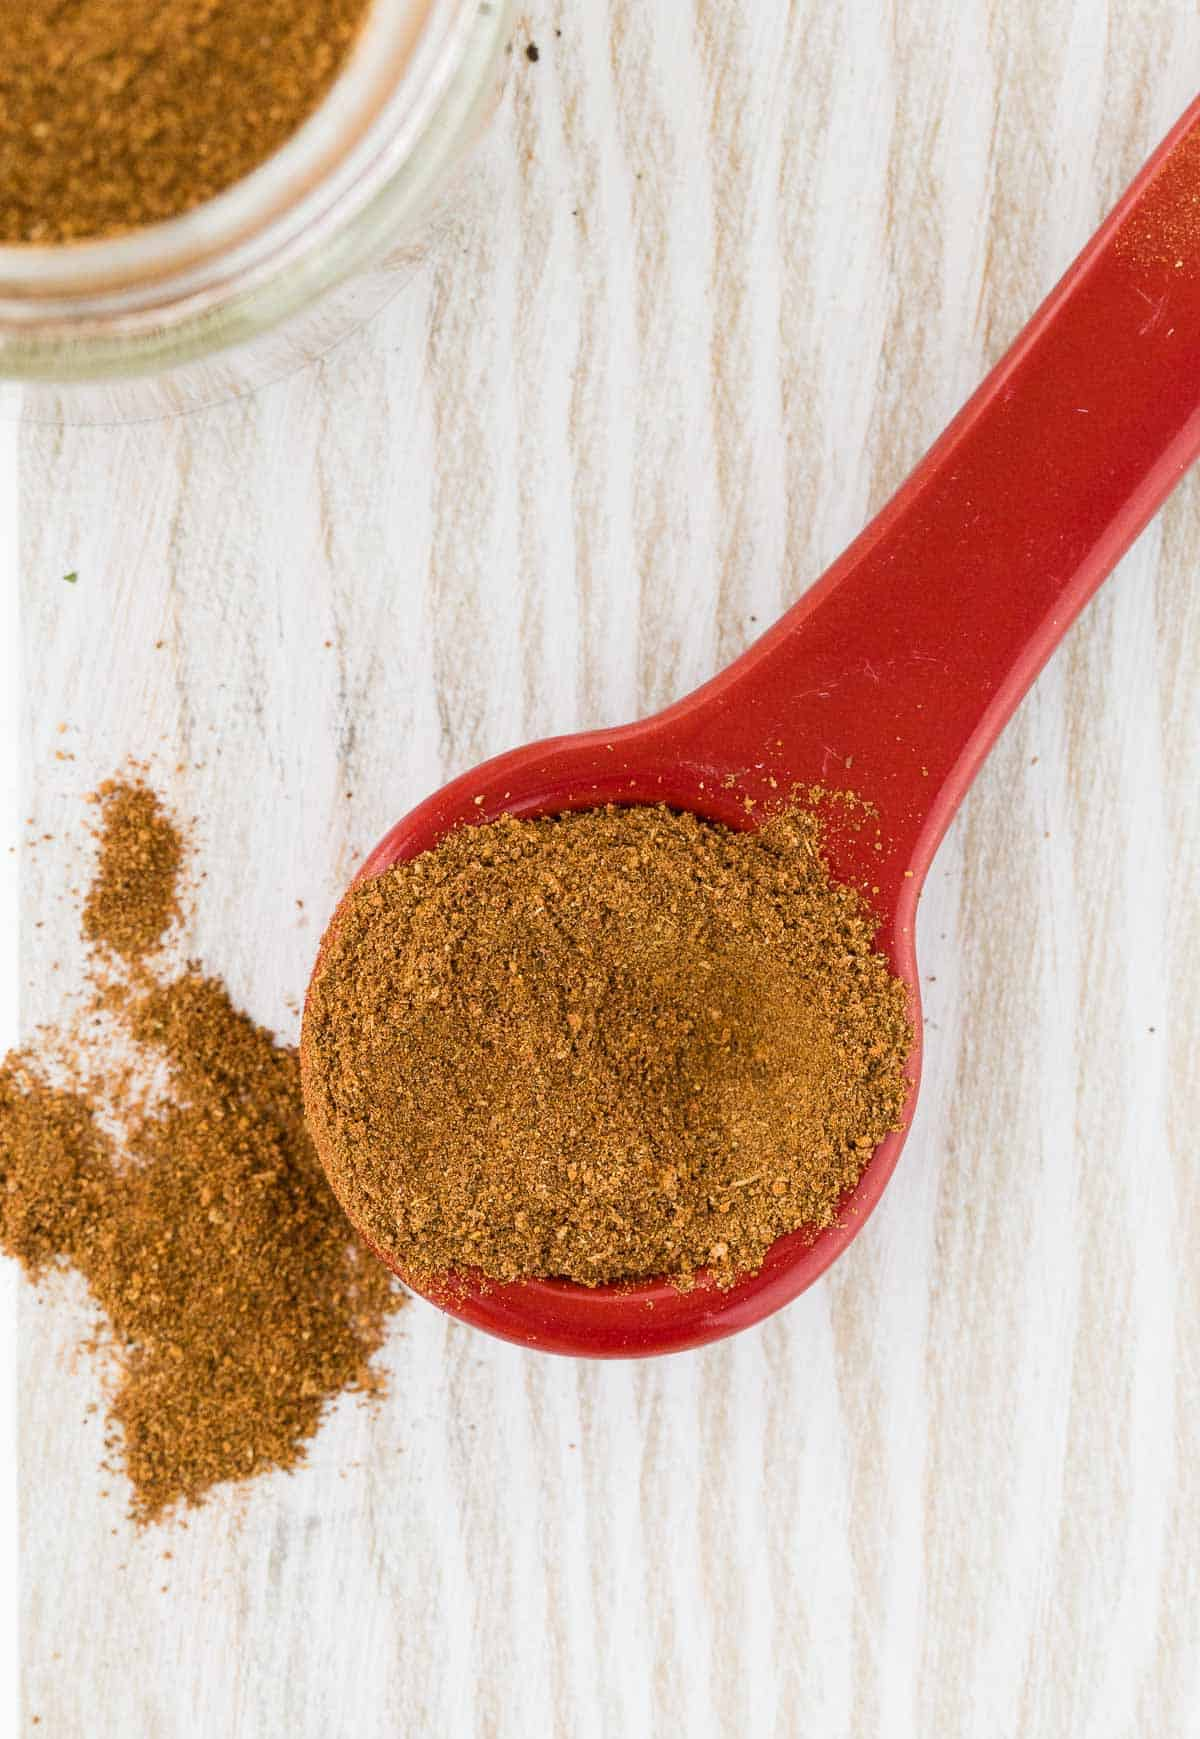 Close up of spices on a red measuring spoon.